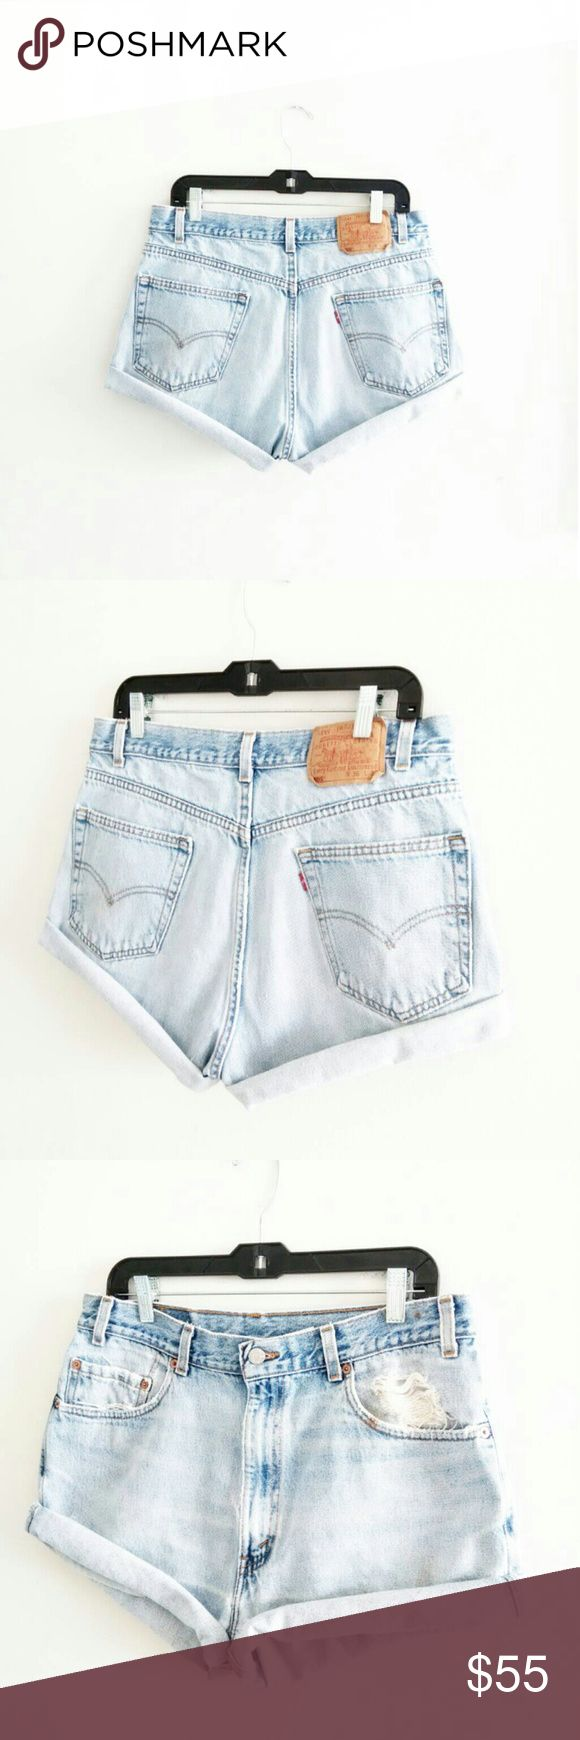 """Mothers Day Sale! Vintage Levi's High Waist Shorts These were $55  WAIST - 32/33"""" HIPS - 45/46"""" RISE - 15"""" high waist LENGTH UNROLLED - 15"""" STRETCH - no MATERIAL - cotton HEM- hand cut, frayed  13"""" rise and up is considered high waist, please measure yourself  These are more a size 11/12 listed as such, disregard tag size. These date back to 1986, these have marks and are highly distressed. Absolutely beautiful!!!!  *No - trades, not modeling *Ships everyday except Sunday Levi's Shorts Jean…"""